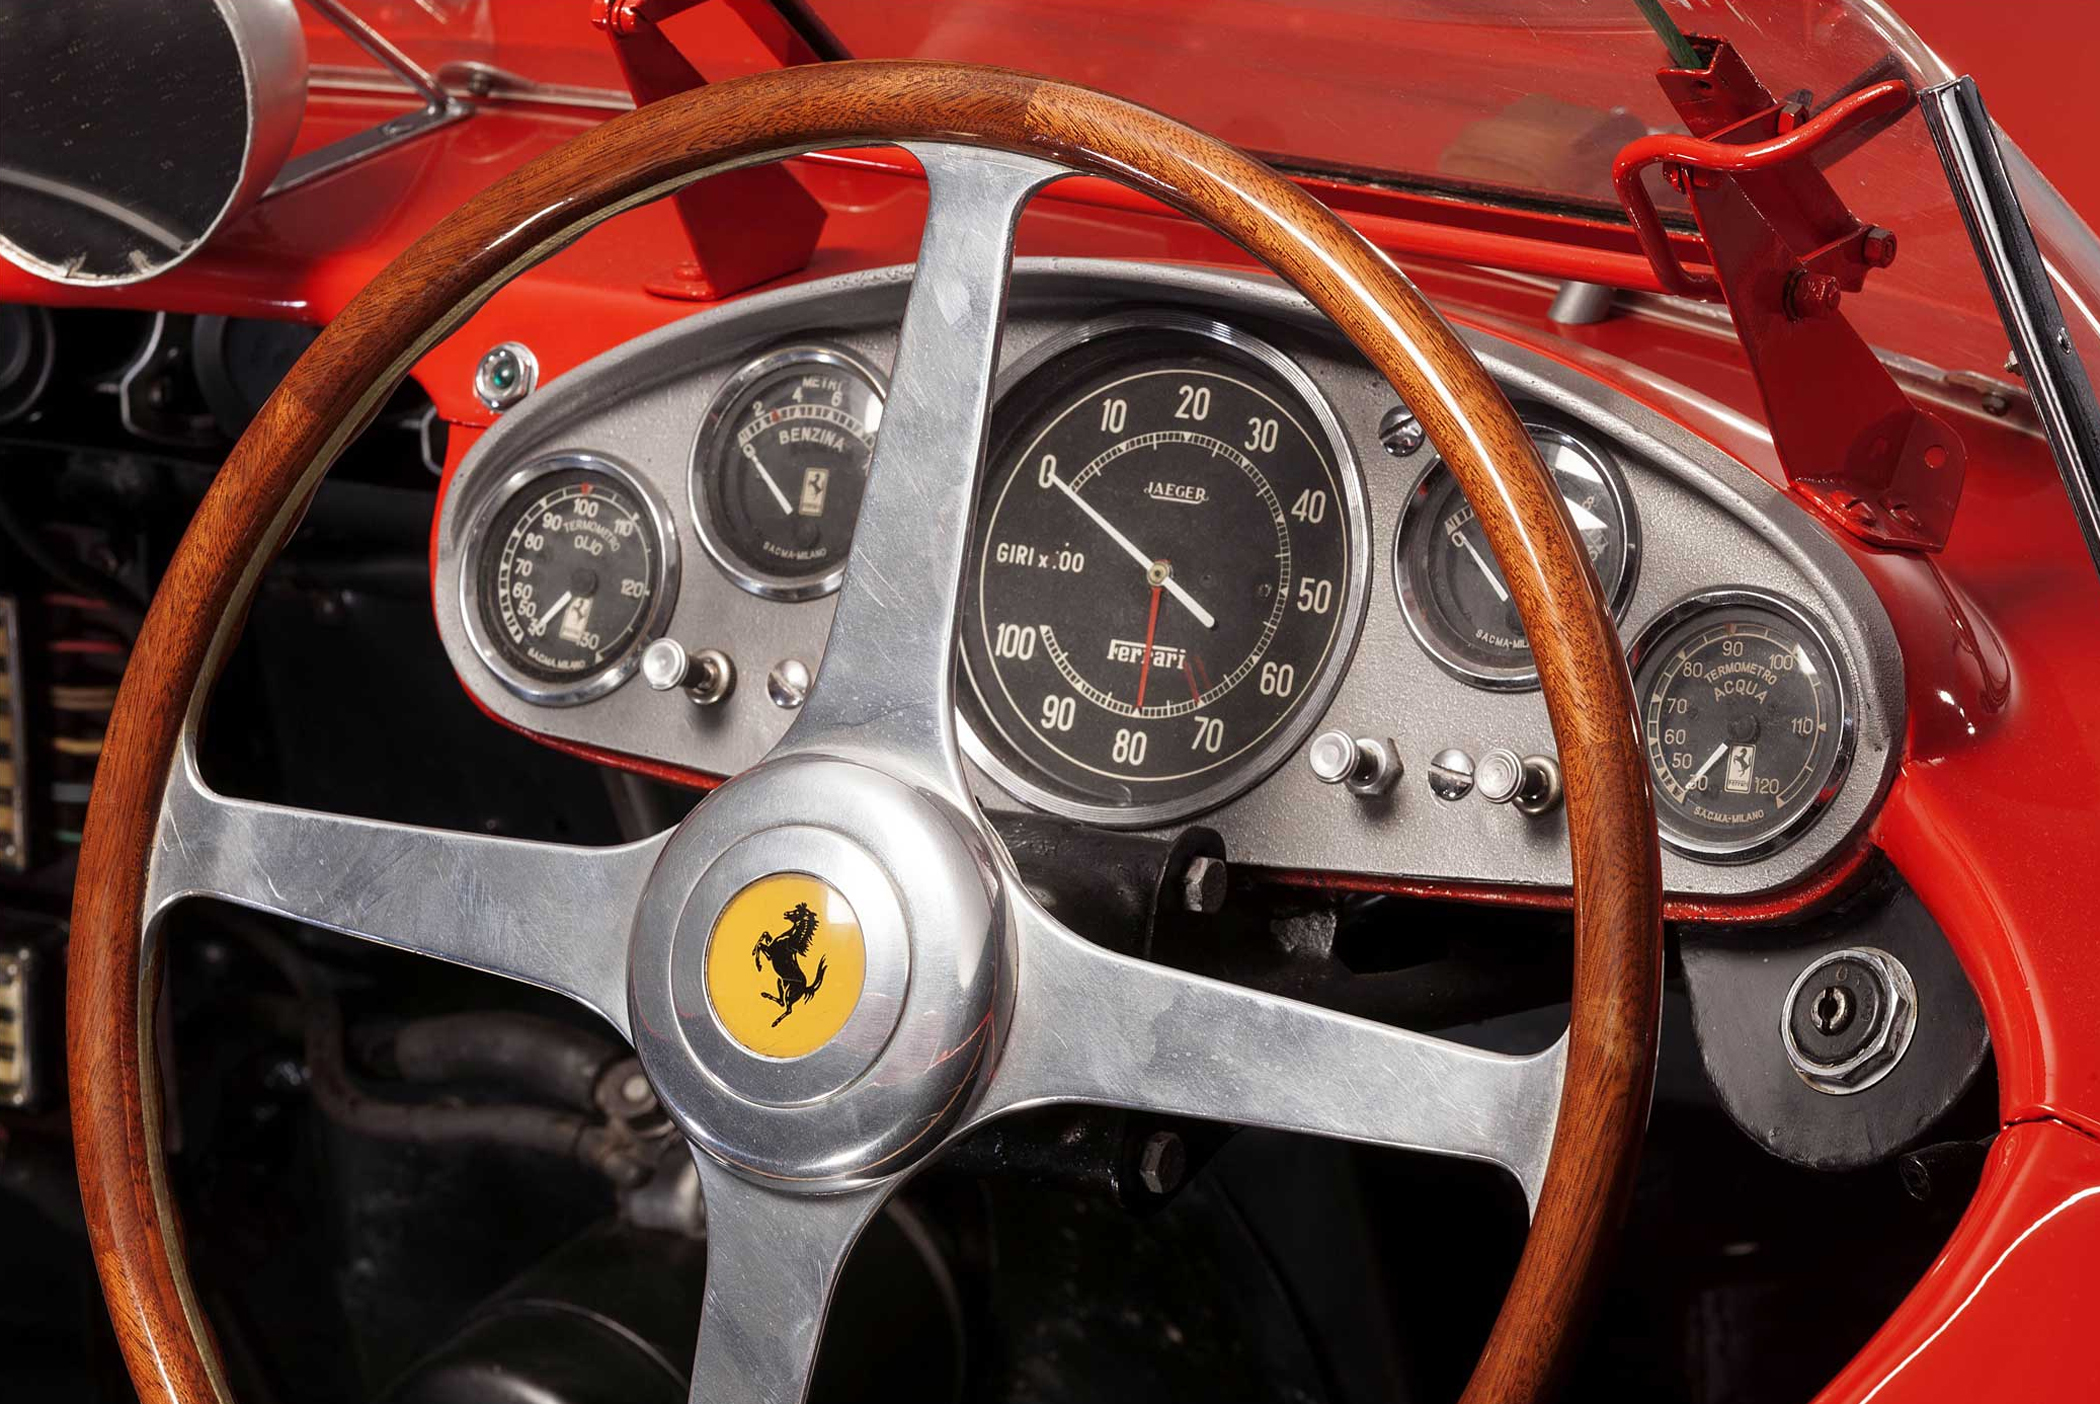 The Ferrari sold for about $36 million.